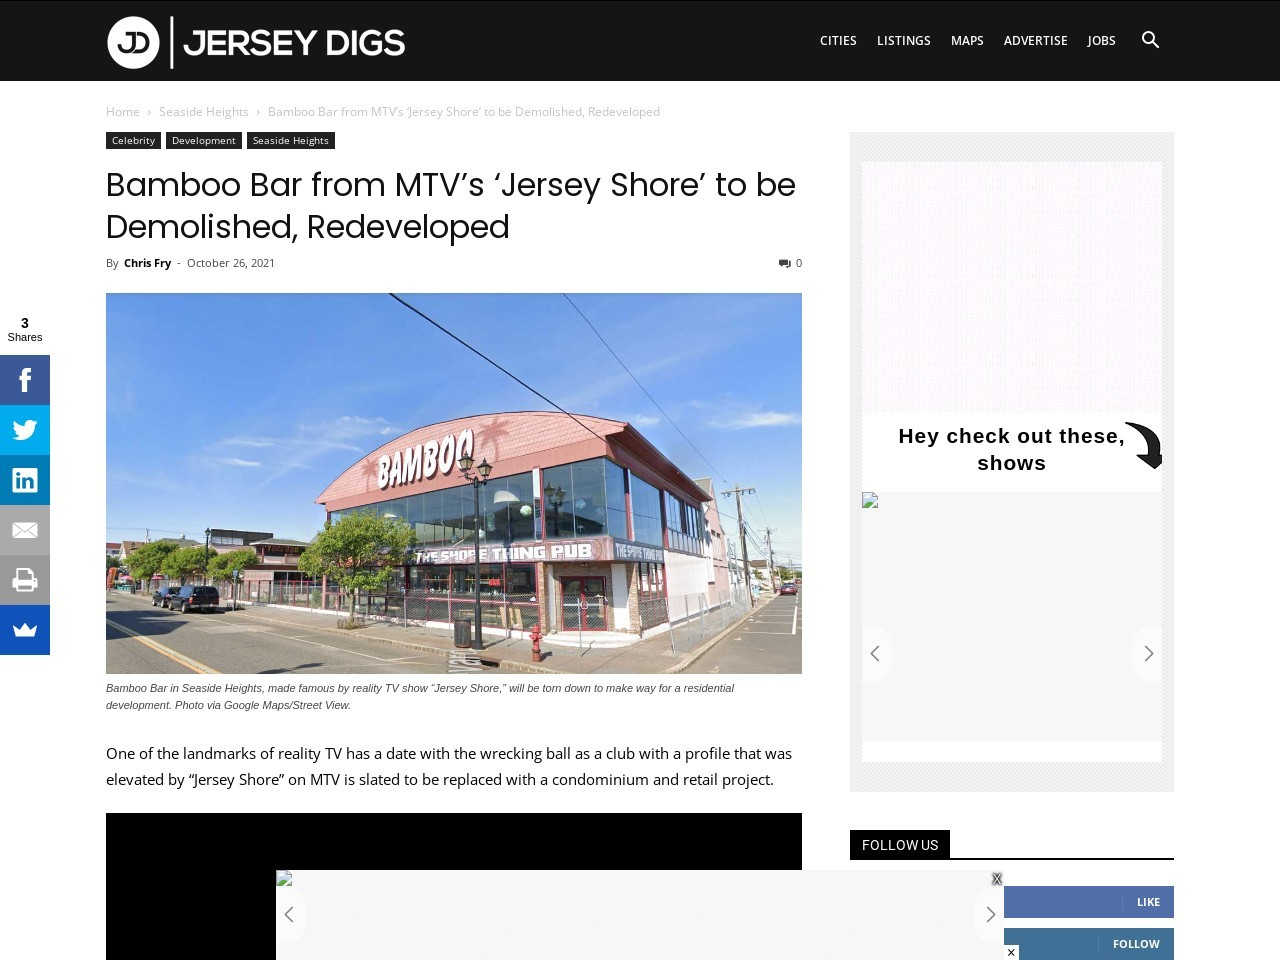 Bamboo Bar from MTV's 'Jersey Shore' to be Demolished, Redeveloped